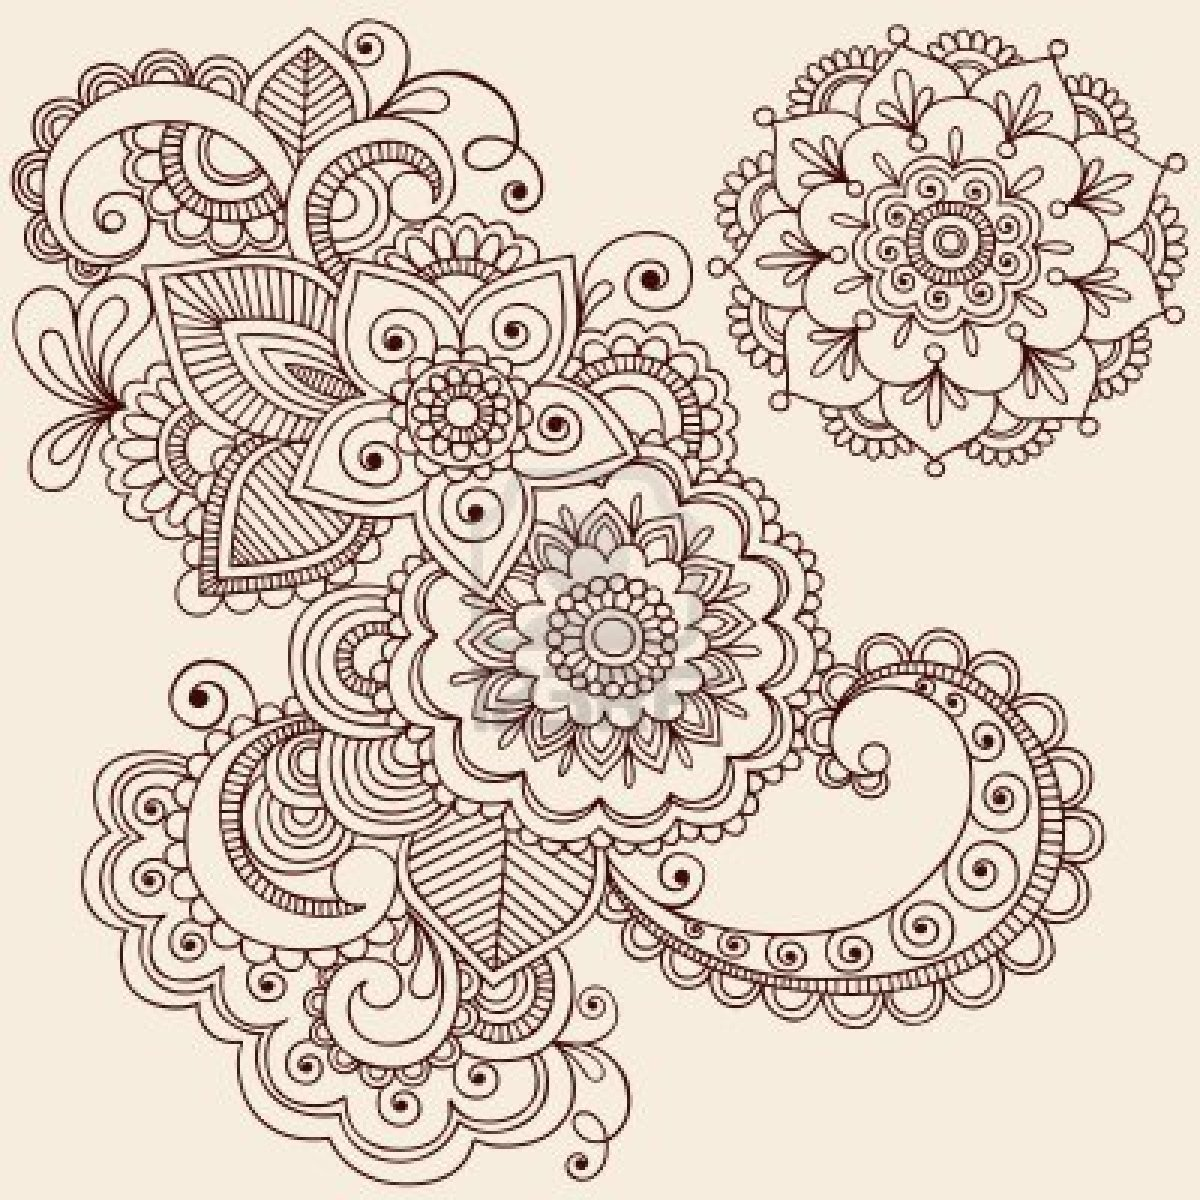 Henna Flower Designs: Henna Tattoo Images & Designs